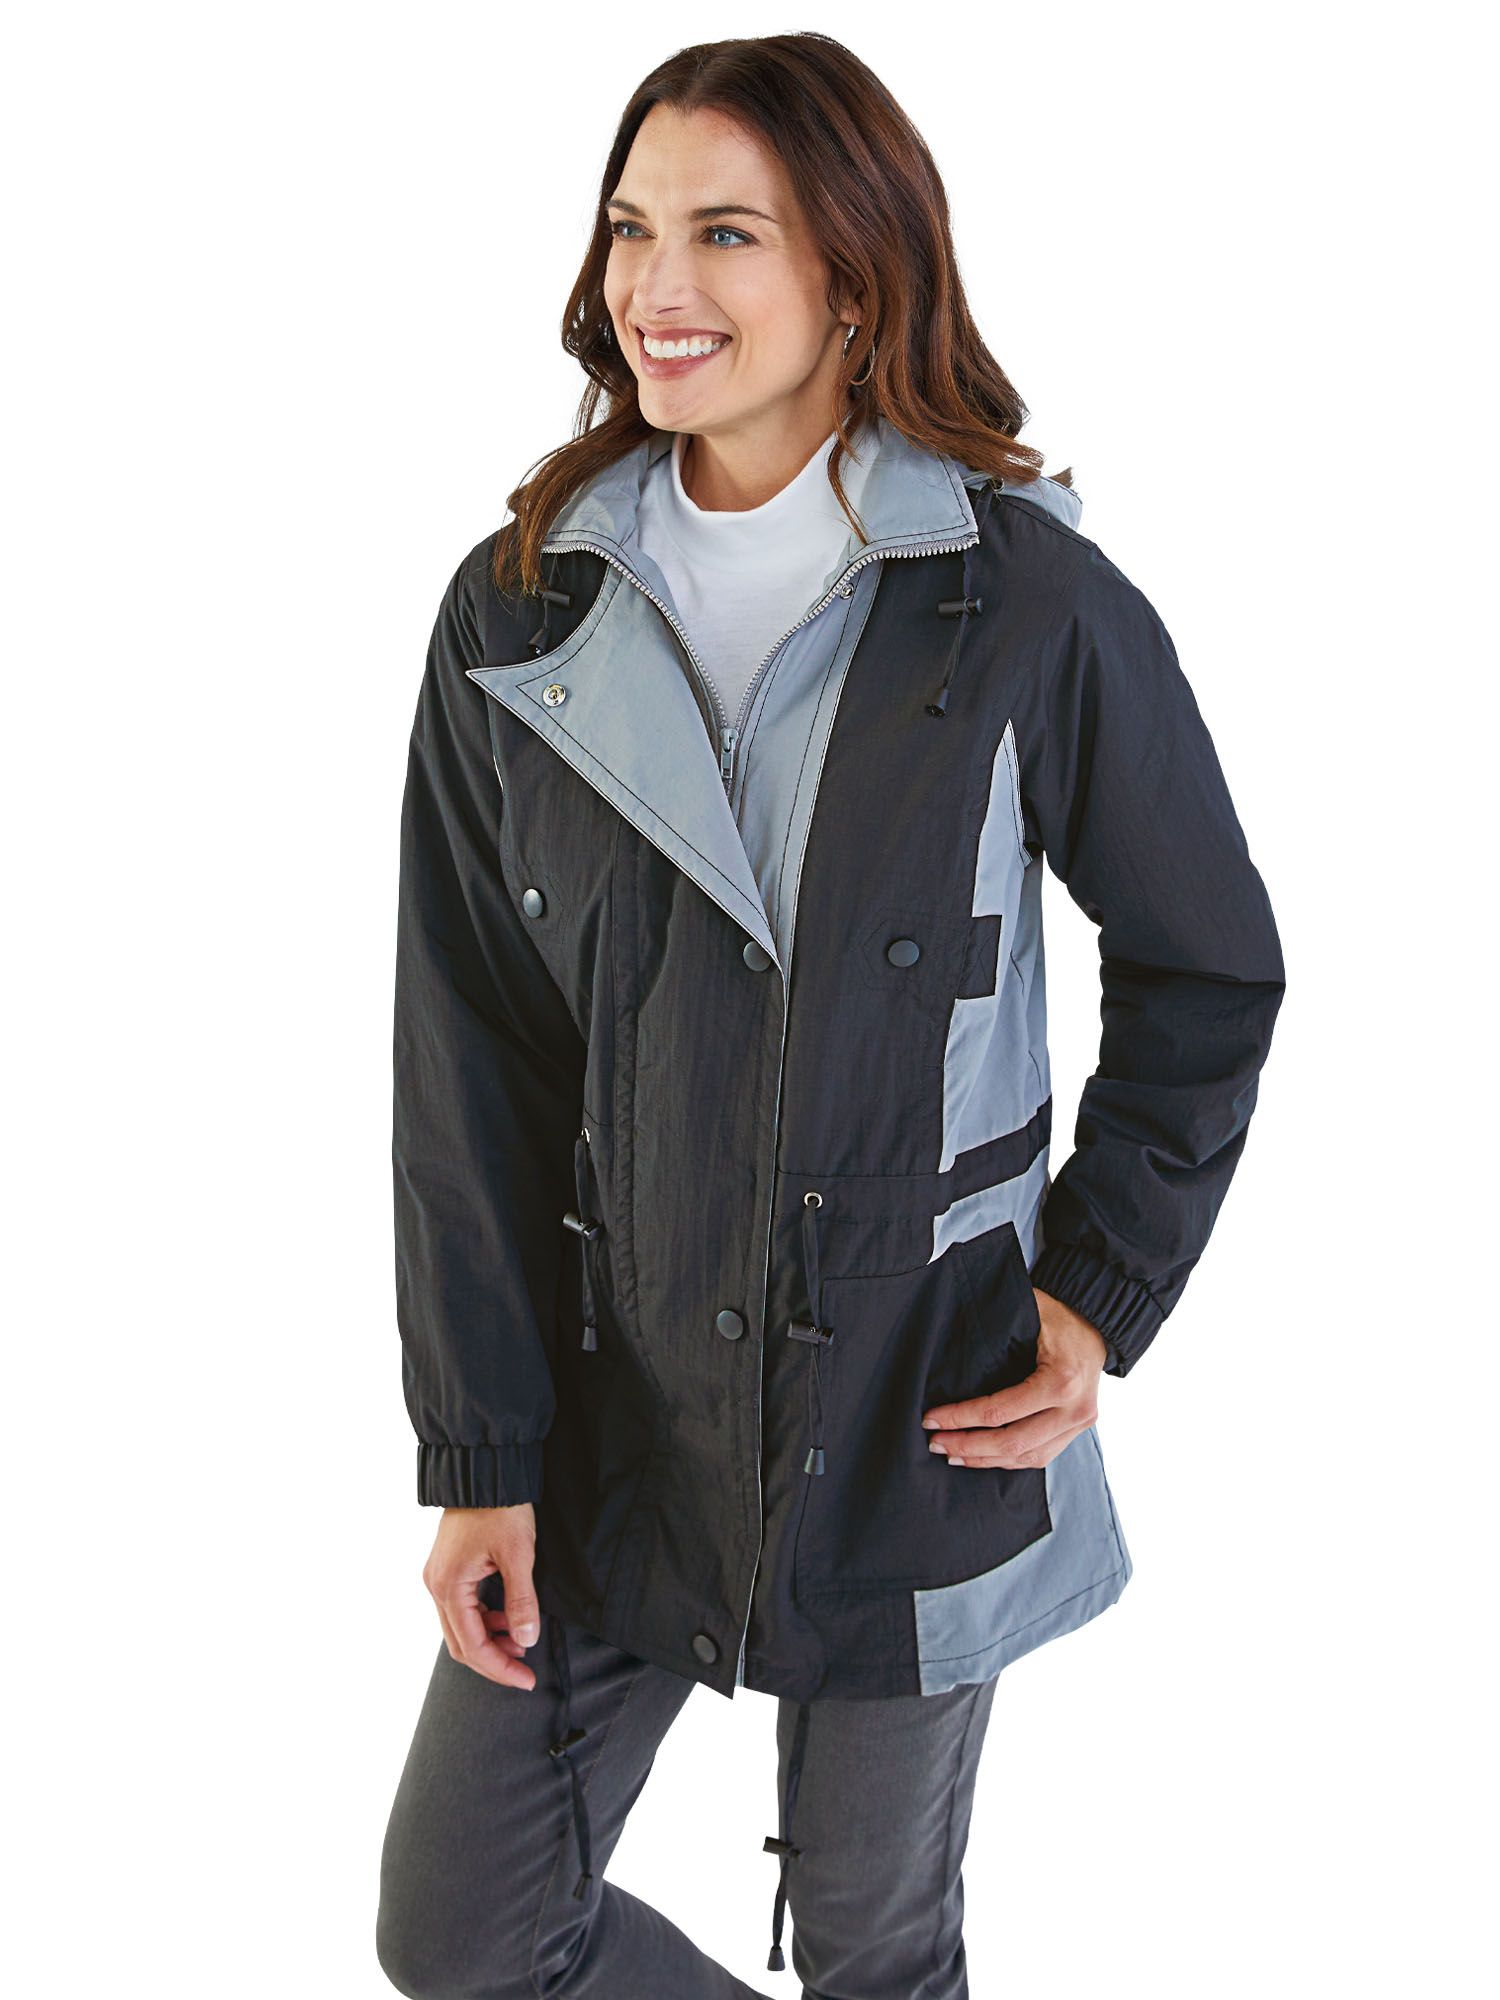 00bbd5c5f6a Jacket with Zip-out Fleece Liner. Tap to zoom